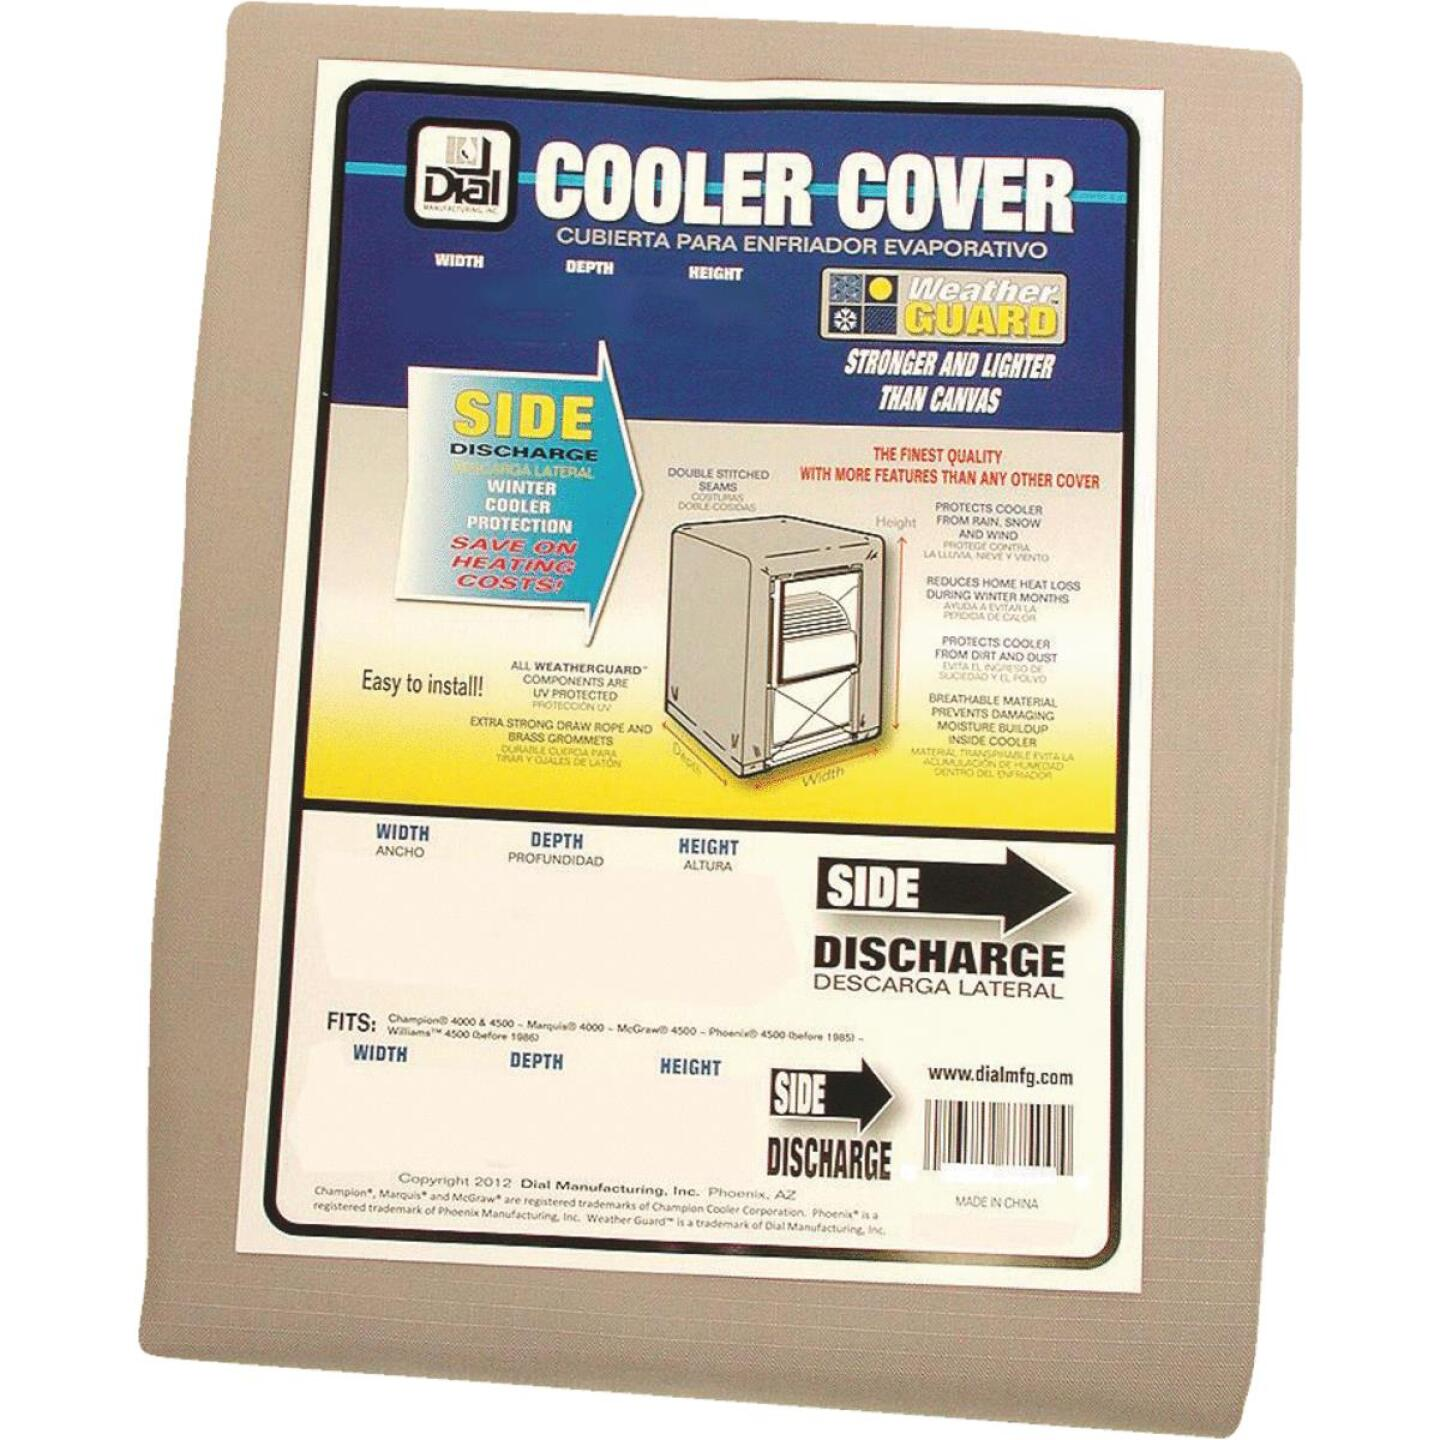 Dial 37 In. W x 37 In. D x 45 In. H Polyester Evaporative Cooler Cover, Side Discharge Image 1